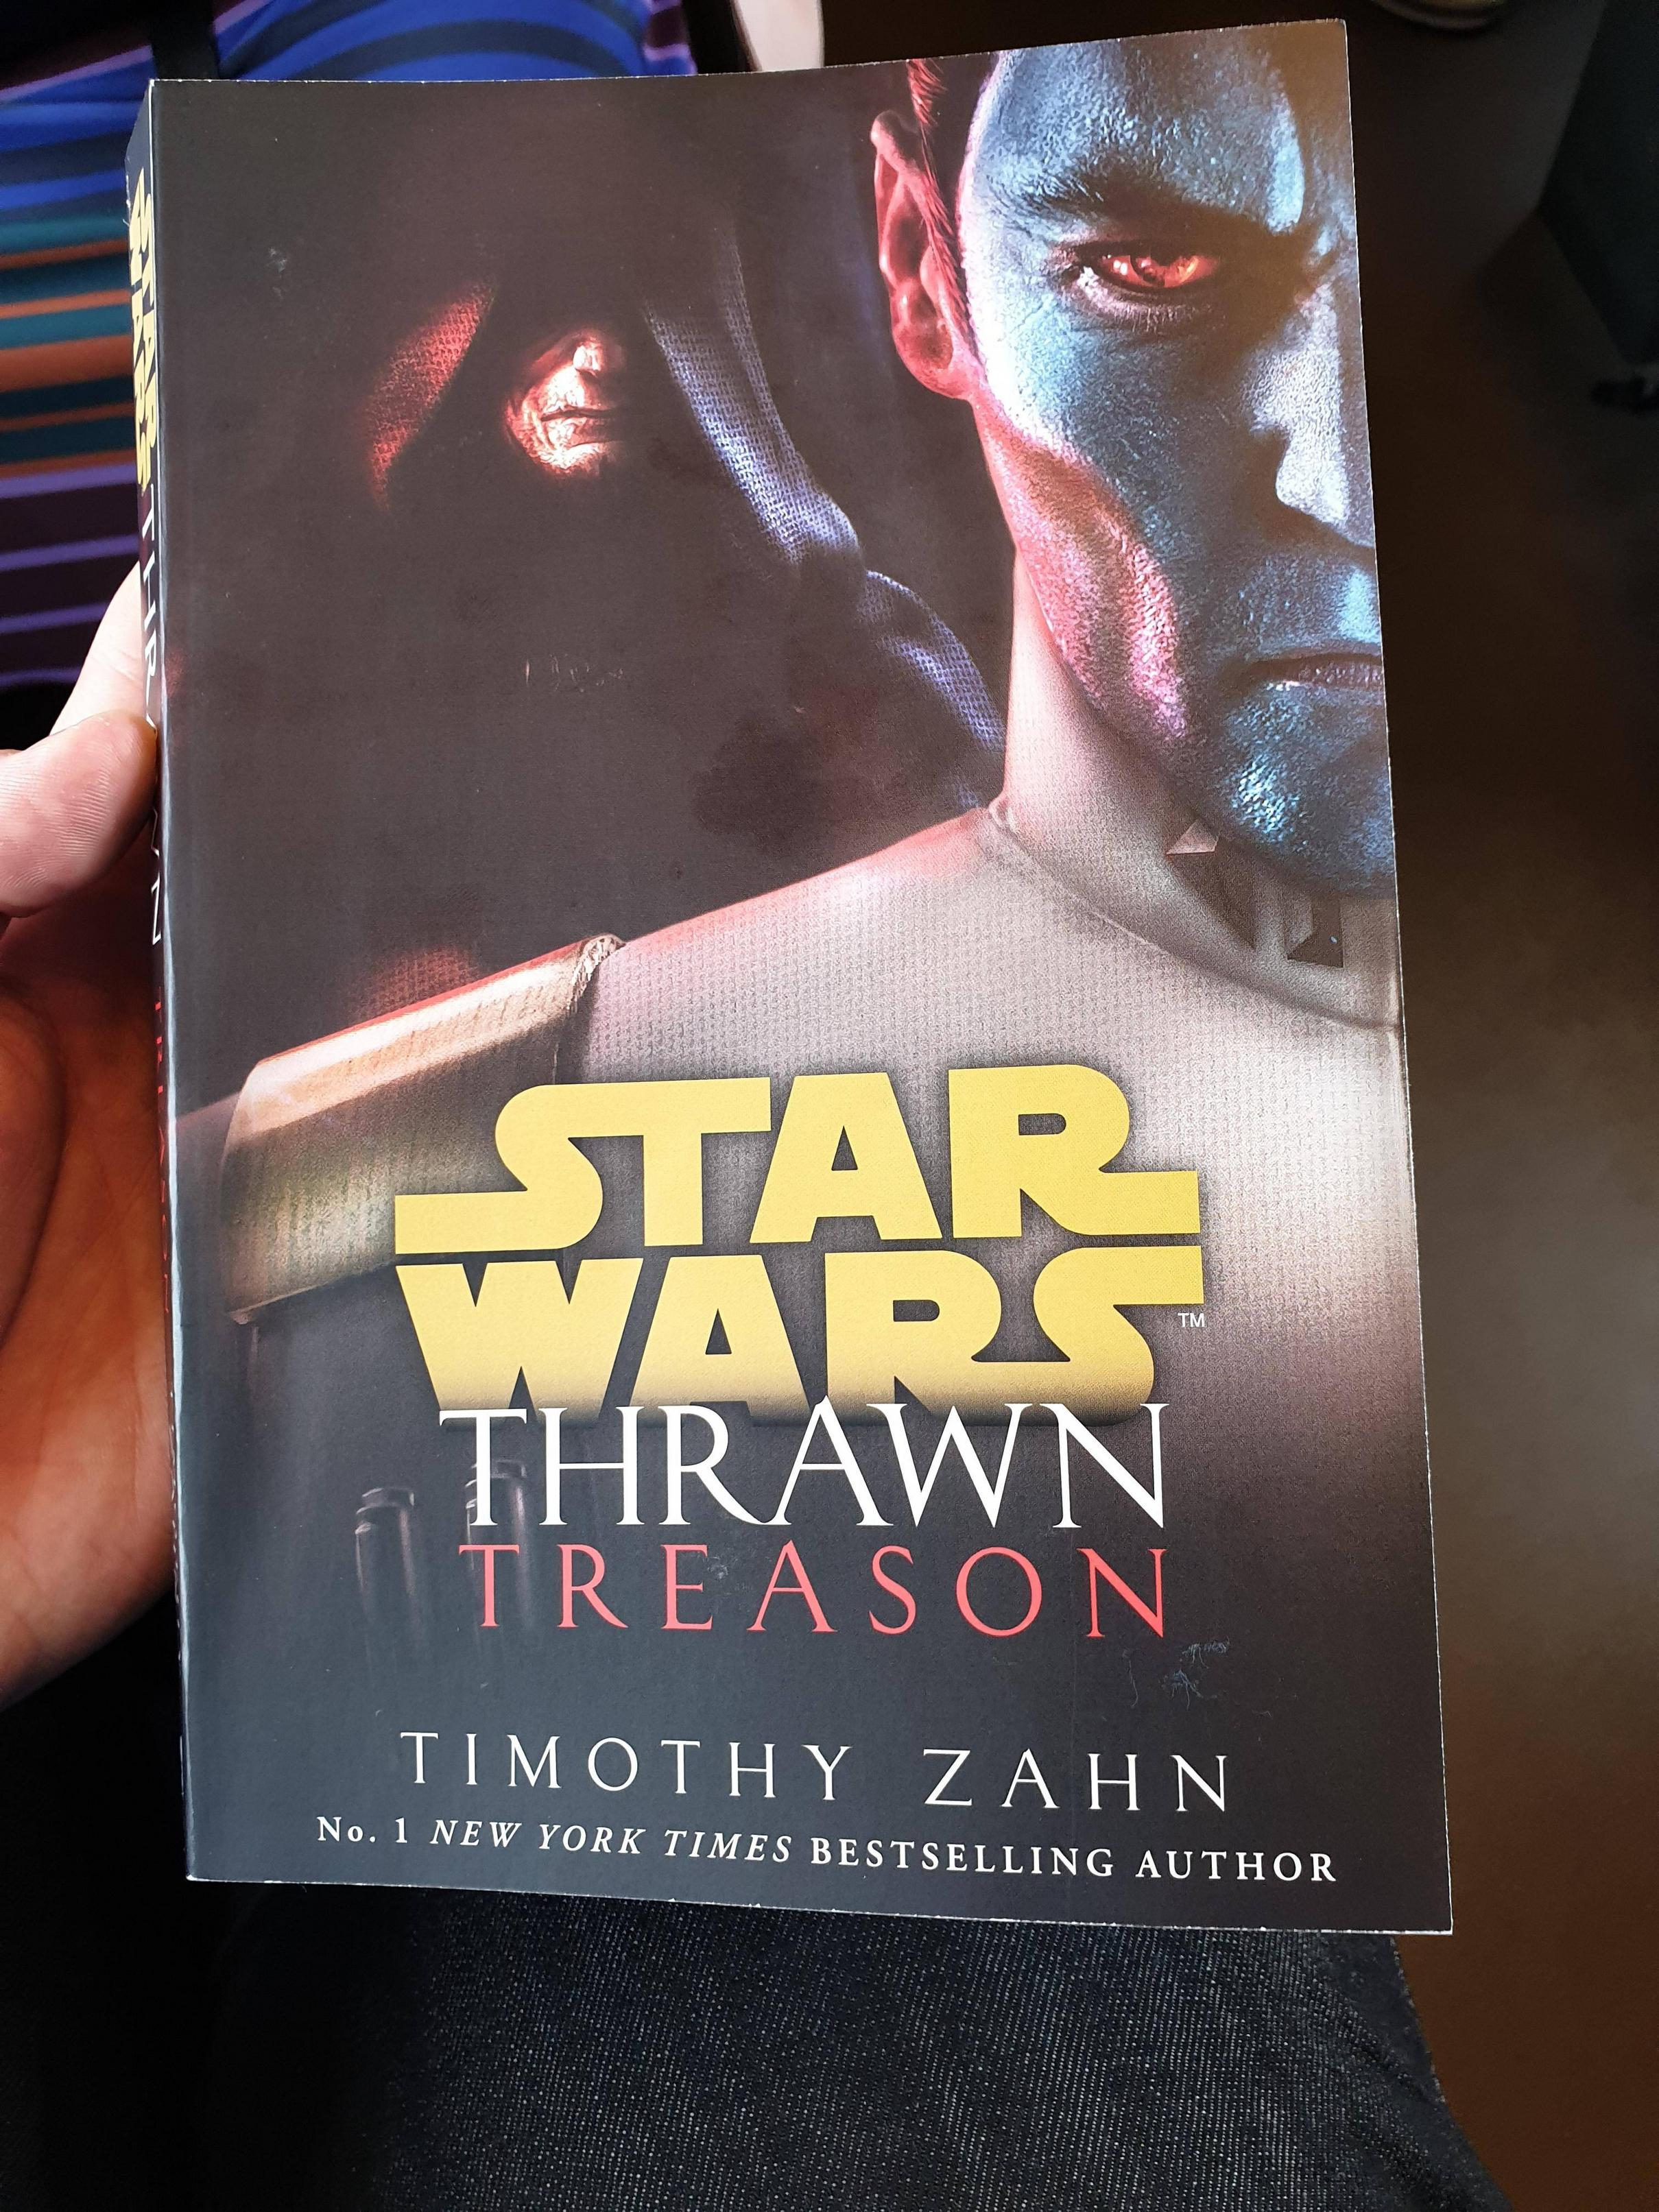 I didn\'t question why I found it in a book store a full week early. I just bought it.